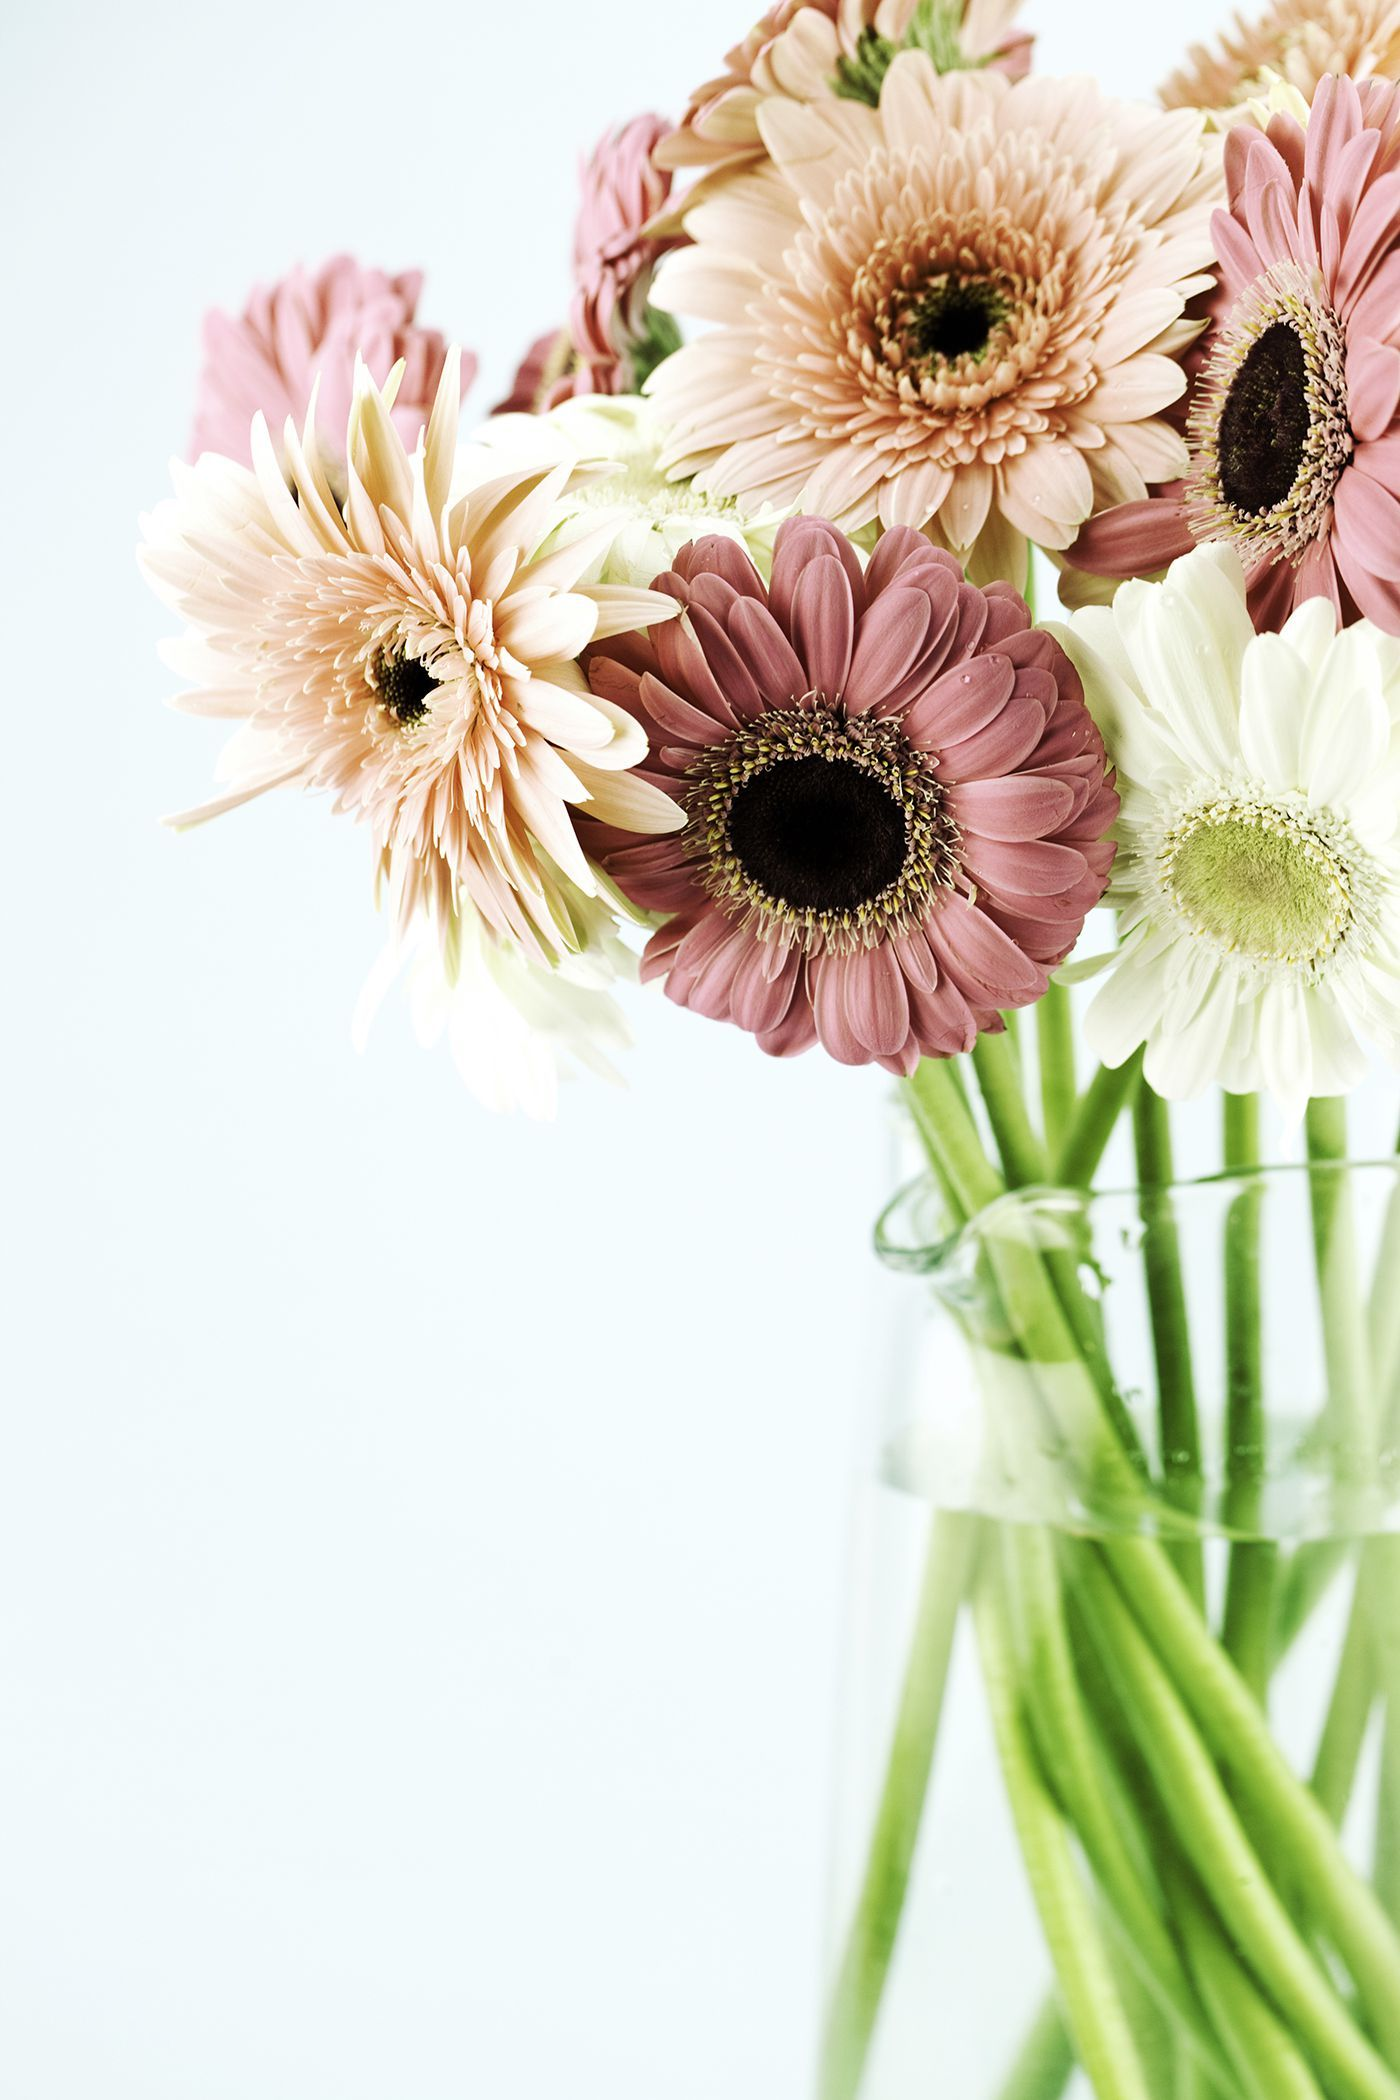 Gerbera Flower Bengali Meaning The Meaning Behind Popular Valentine's Day Flowers